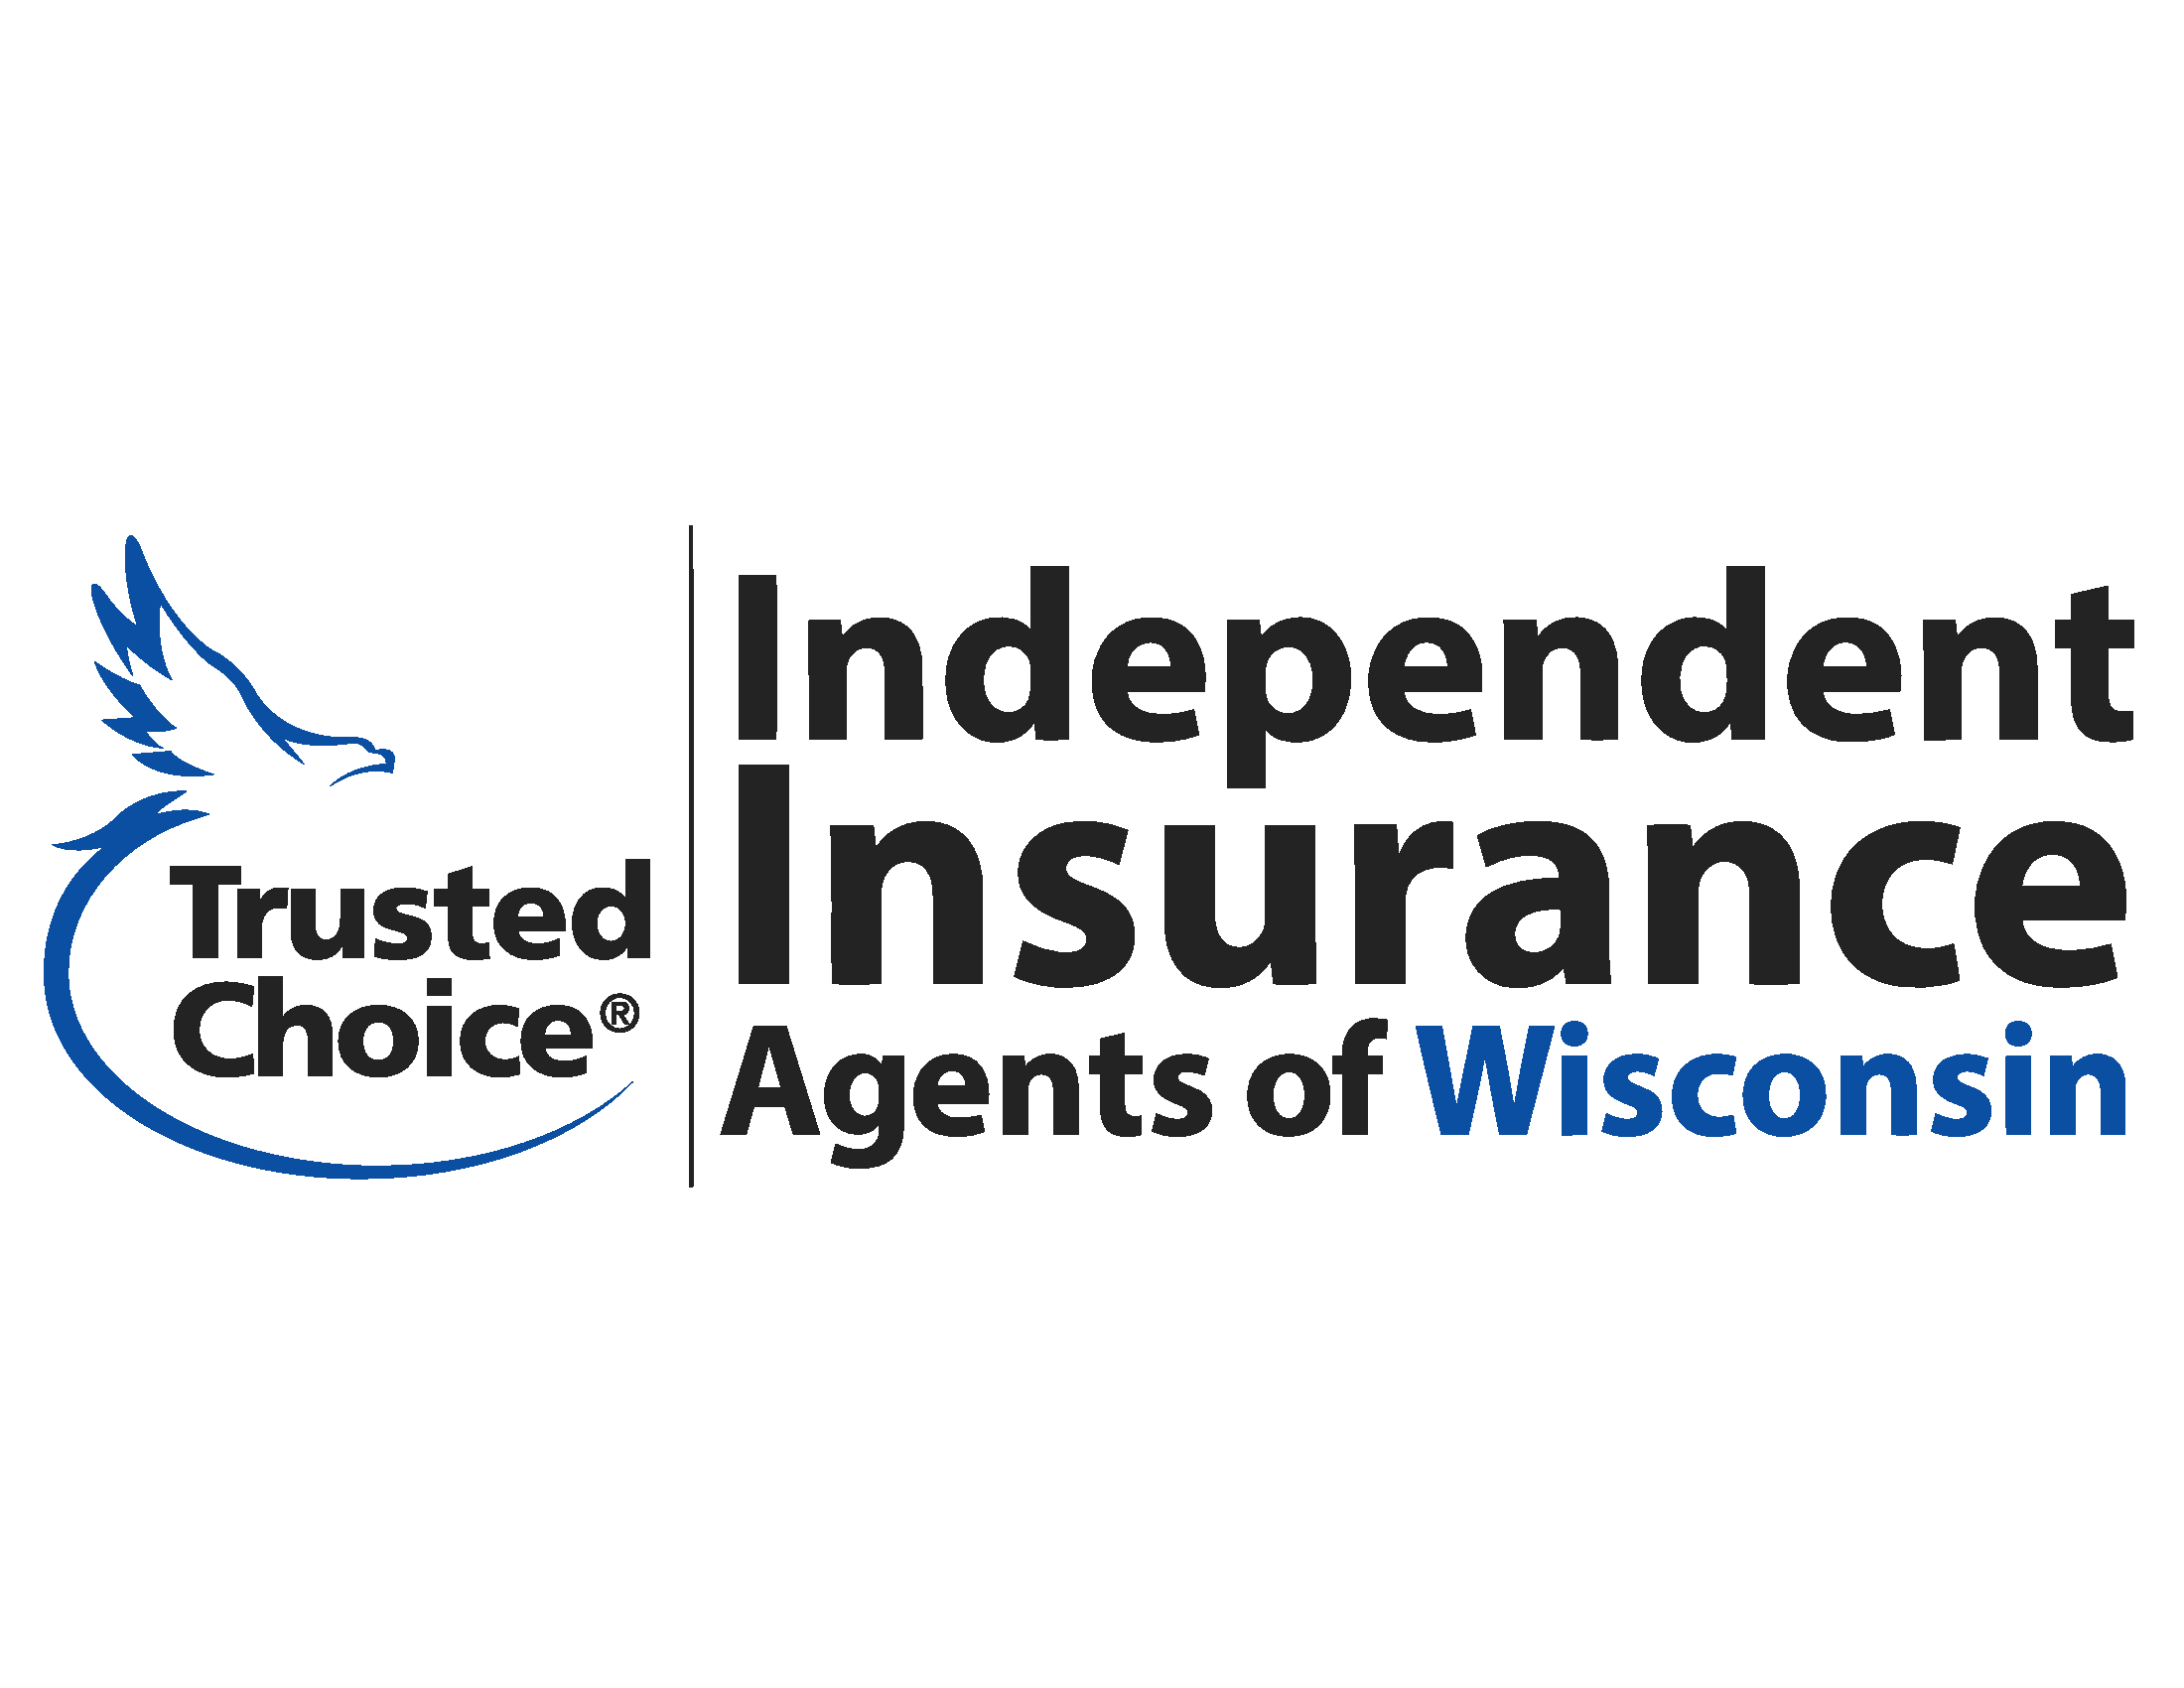 IIAW Logo - Trusted Choice/Independent Insurance Agents of Wisconsin Logo